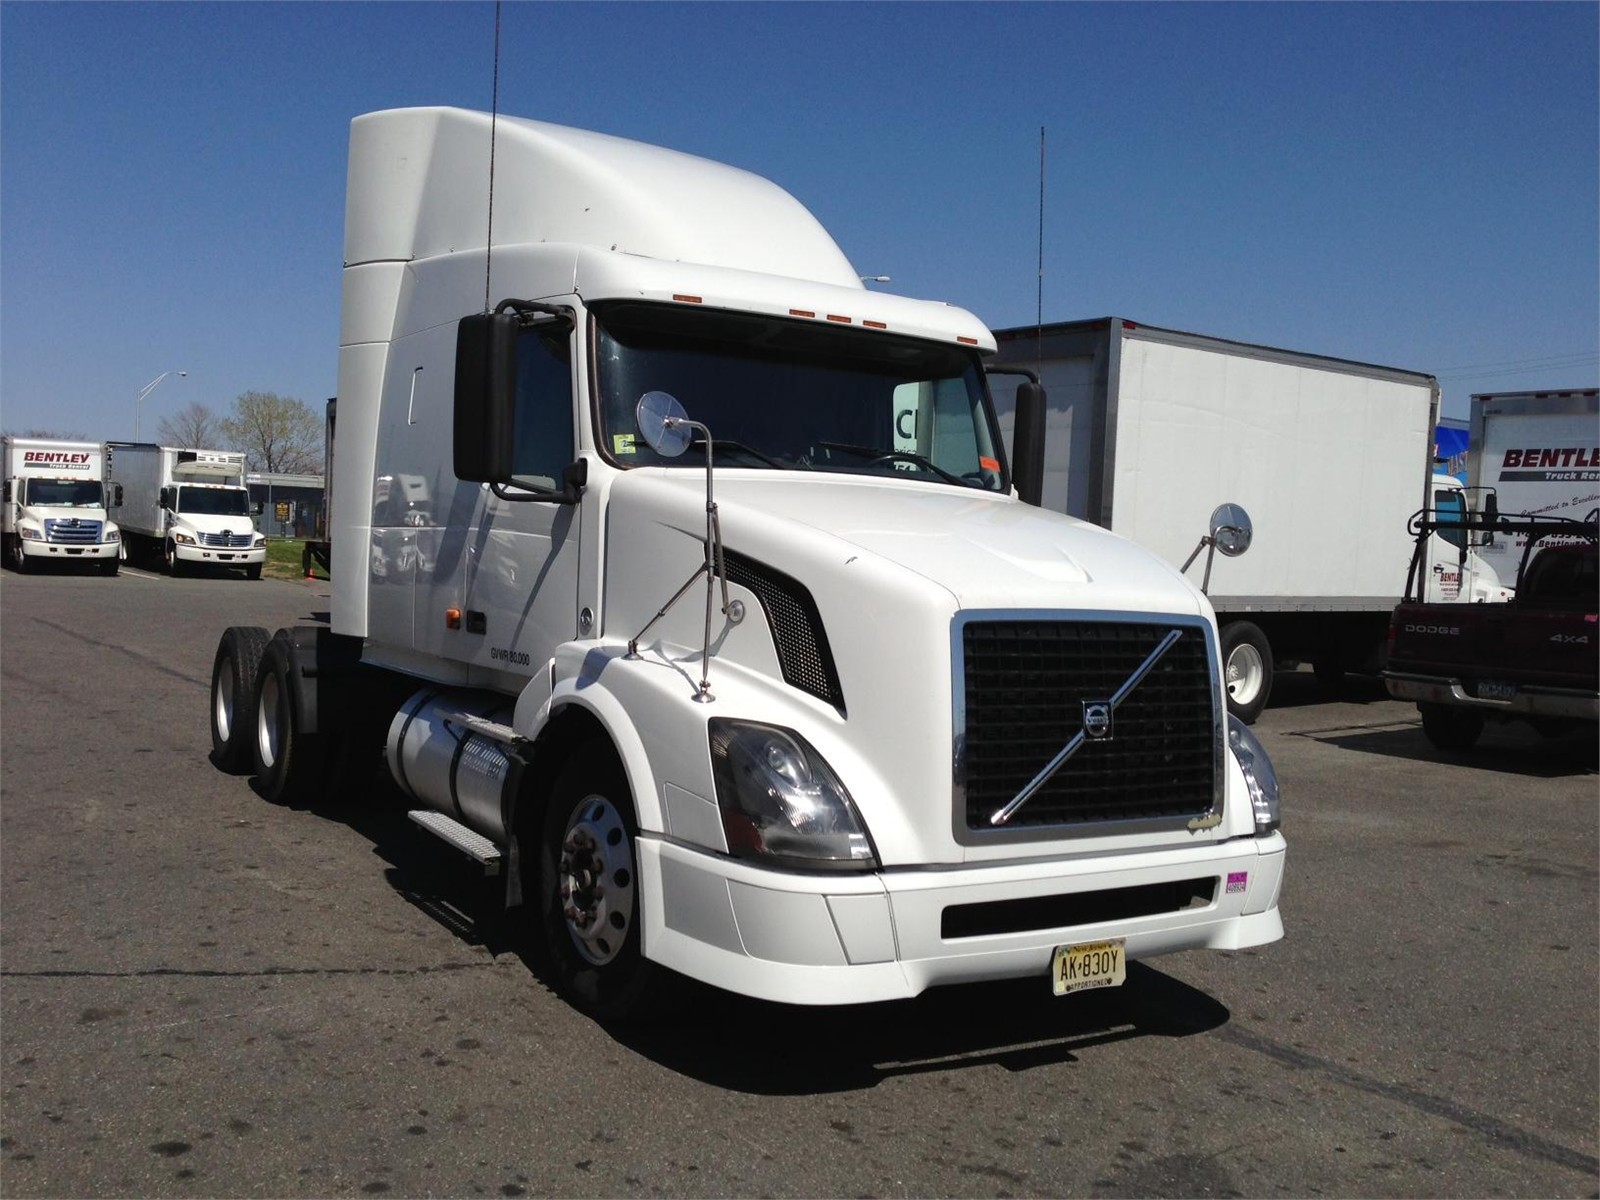 used trucks for sale – just reduced